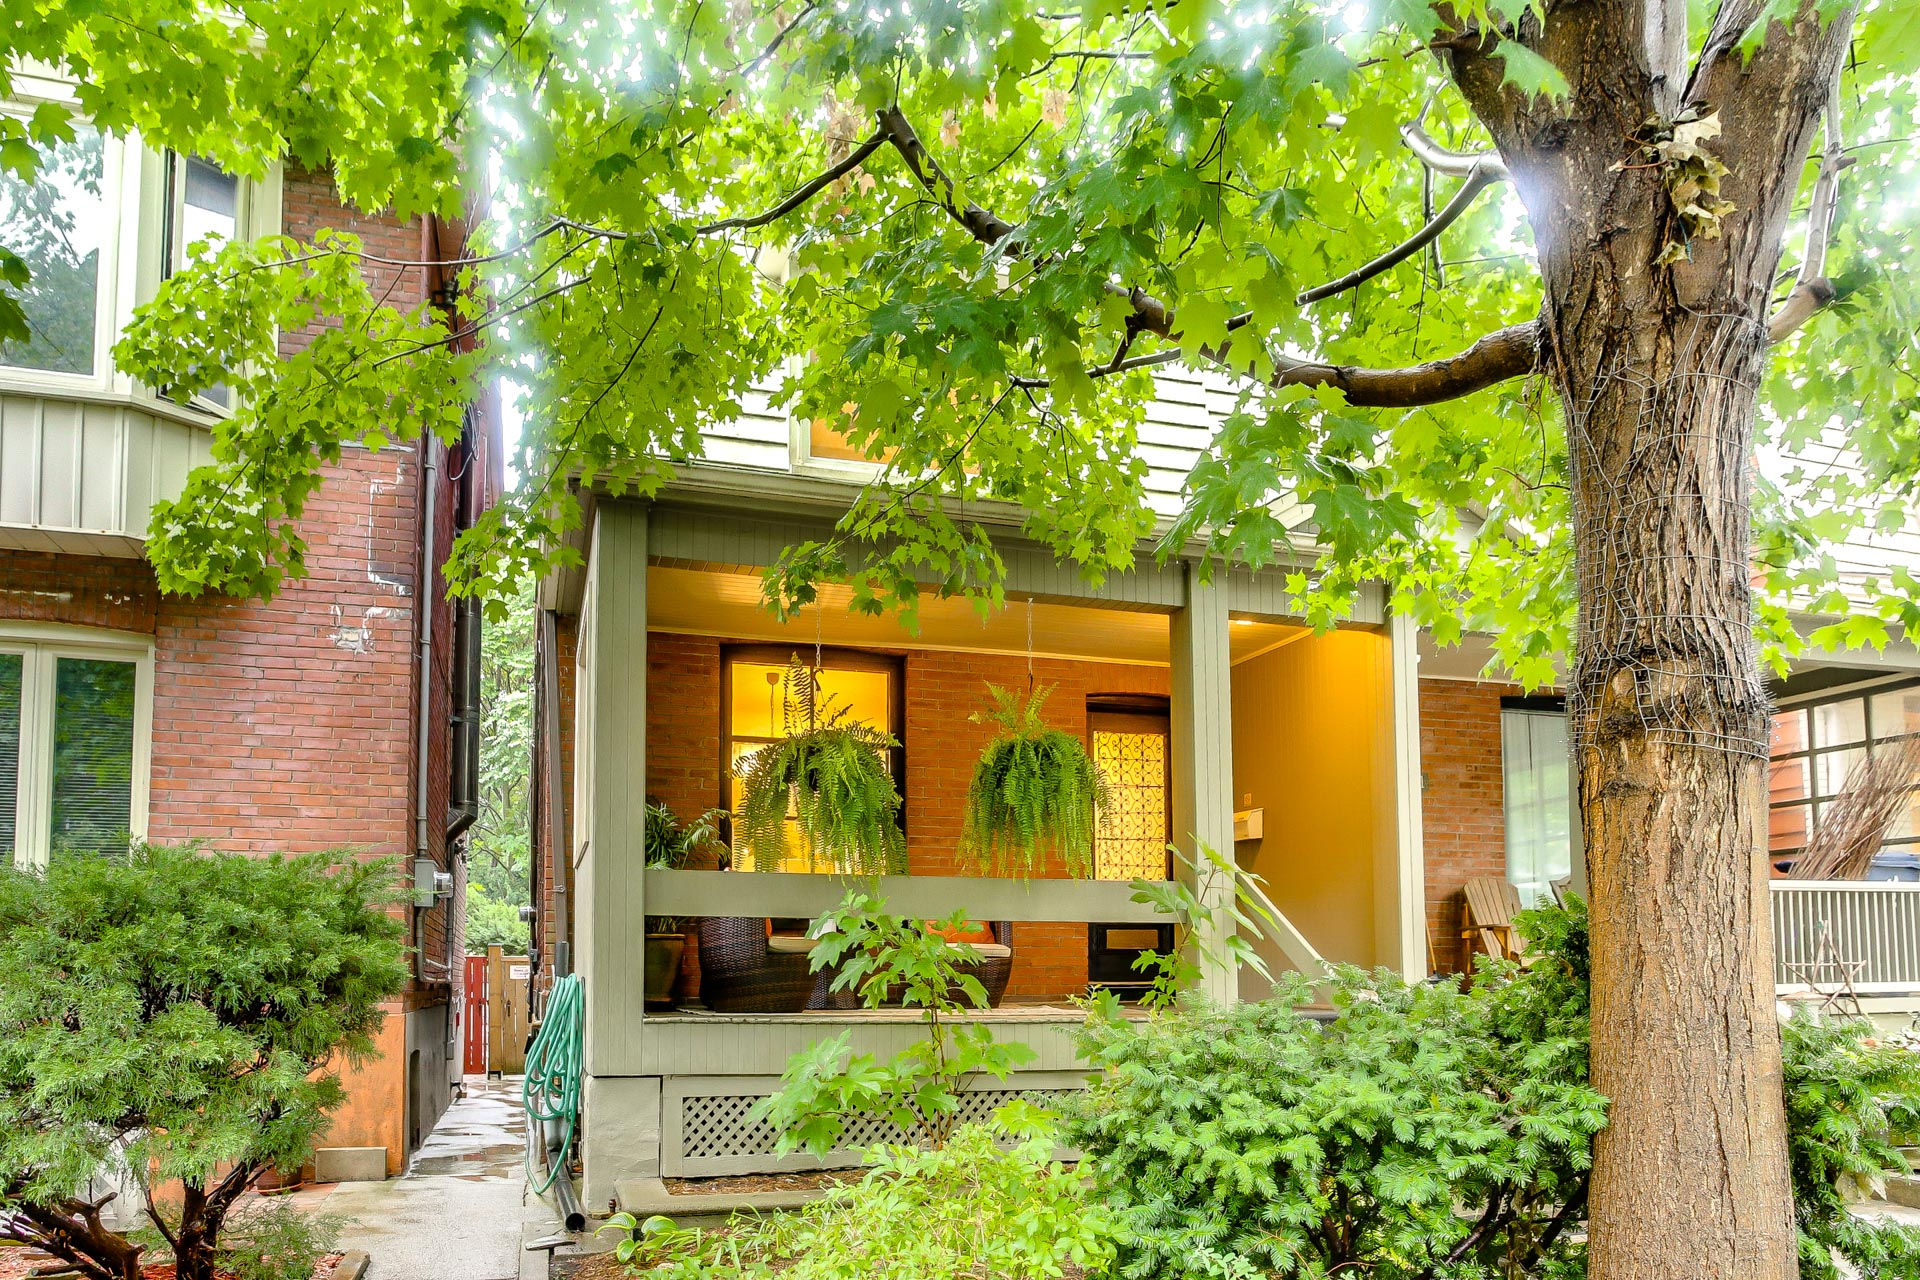 113 Riverdale Avenue - SOLD